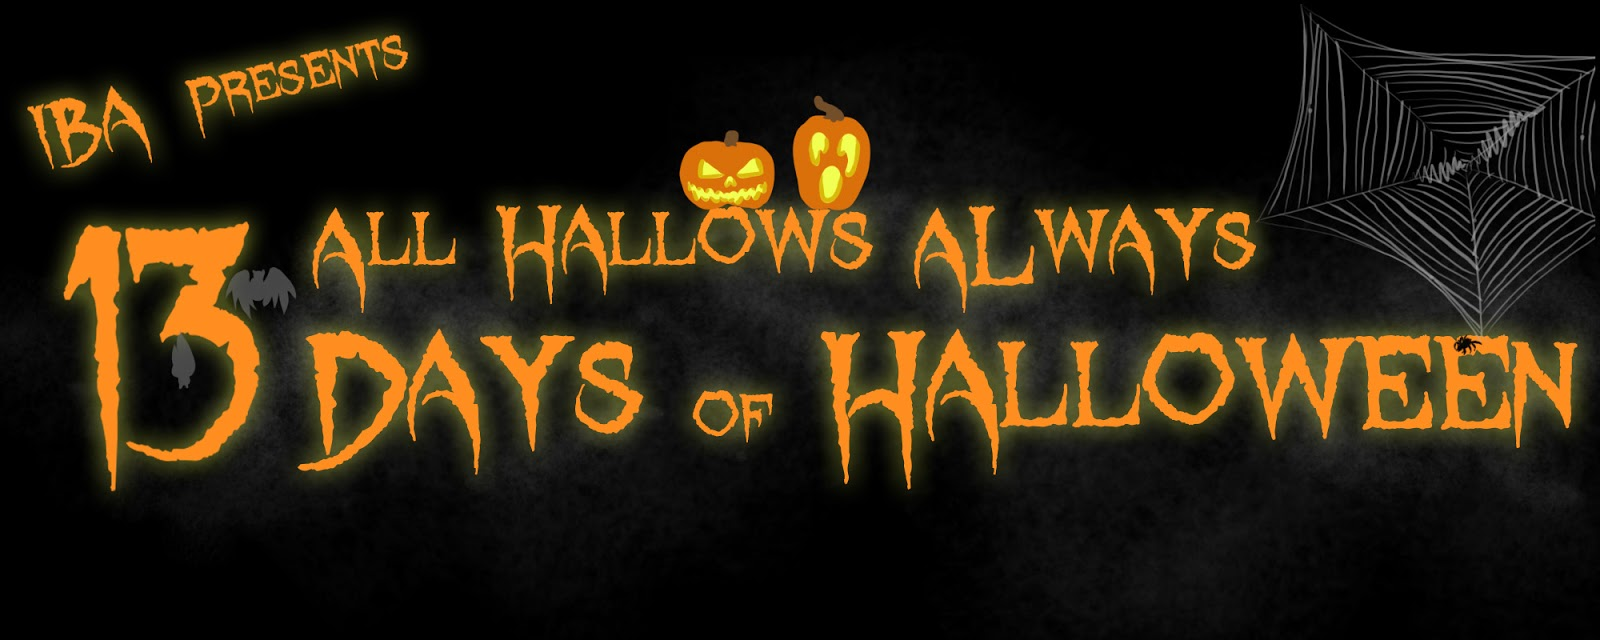 irrelevant but awesome: all hallows always 13 days of netflix halloween